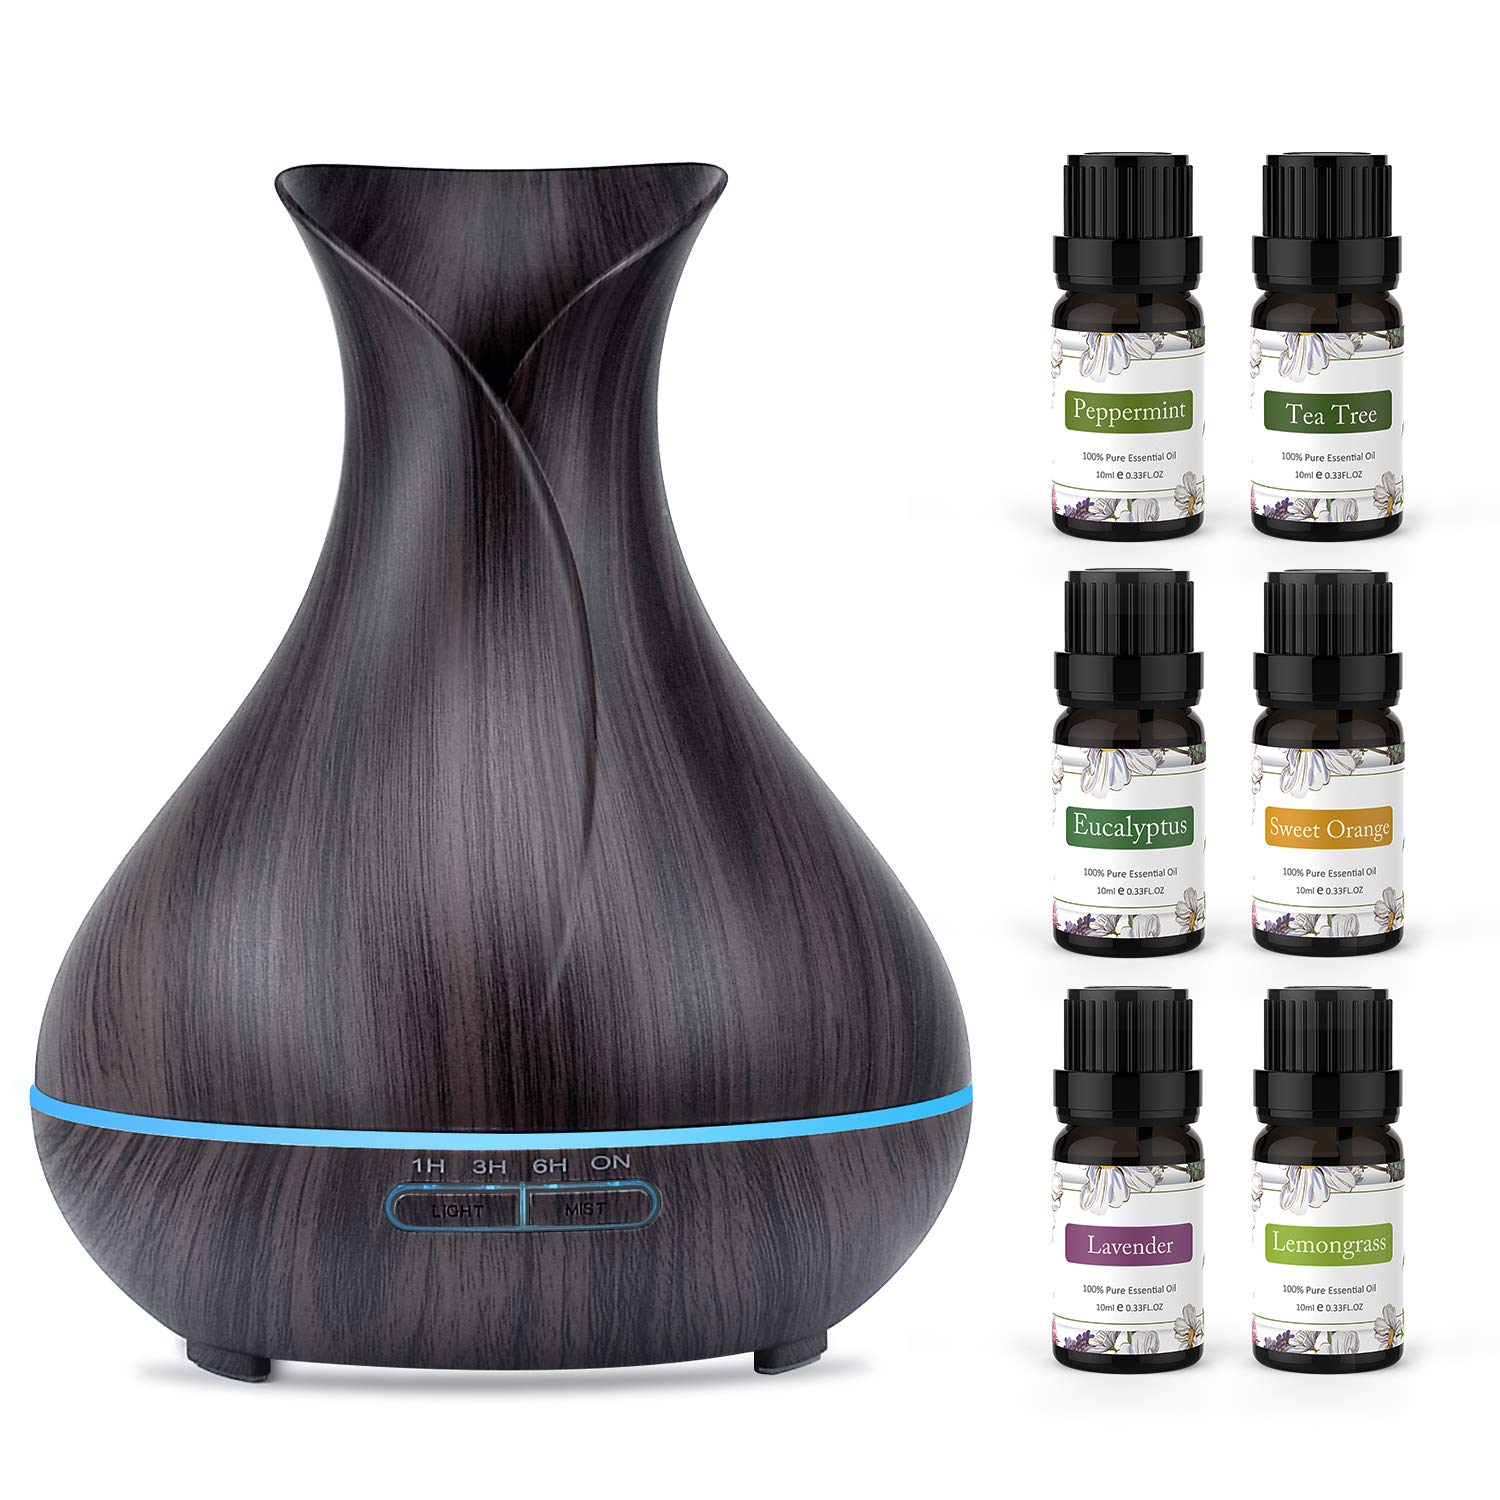 ASAKUKI 400ml Essential Oil Diffuser with 6 Bottles 10ml Pure Natural Essential Oils, 7 LED Color Changing Light and Auto Shut-Off - for Home, Office, Spa, Study, Gym by ASAKUKI